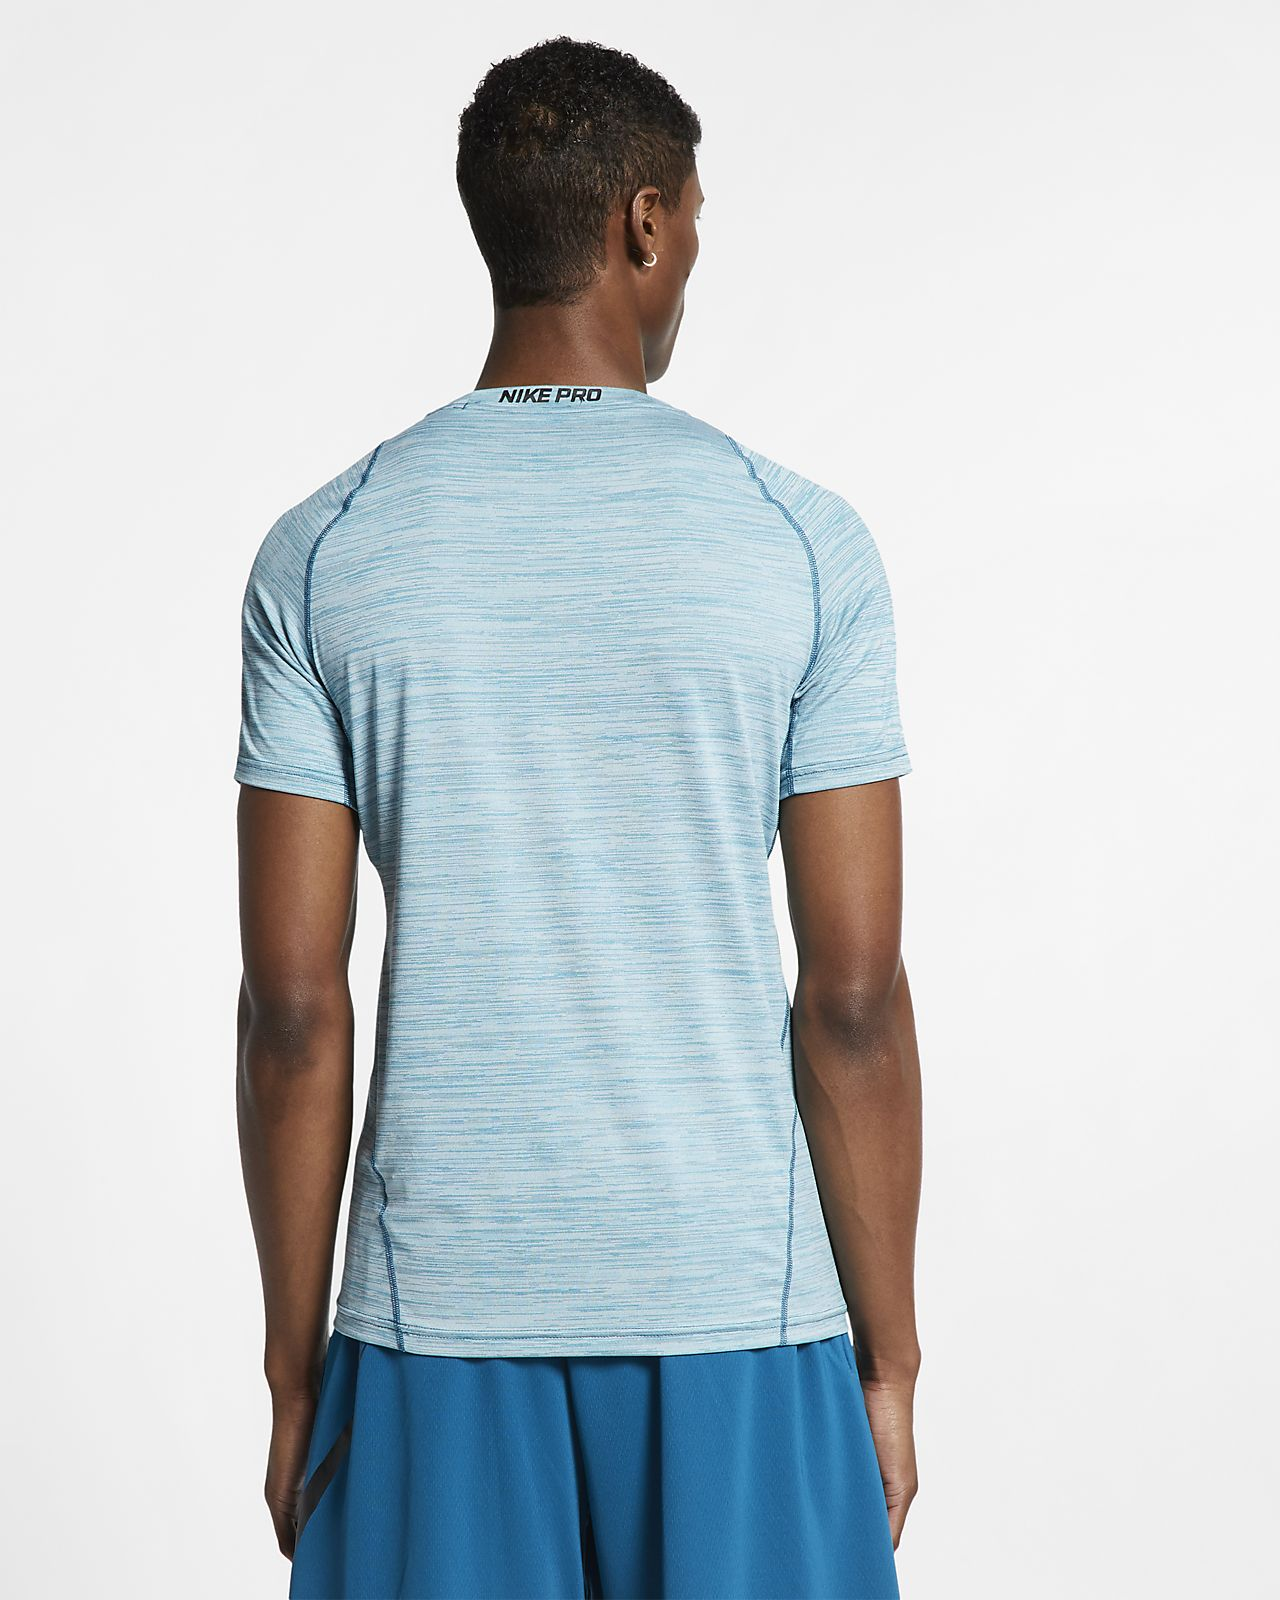 buy popular 38316 730b5 ... Nike Pro Men s Short-Sleeve Fitted Top